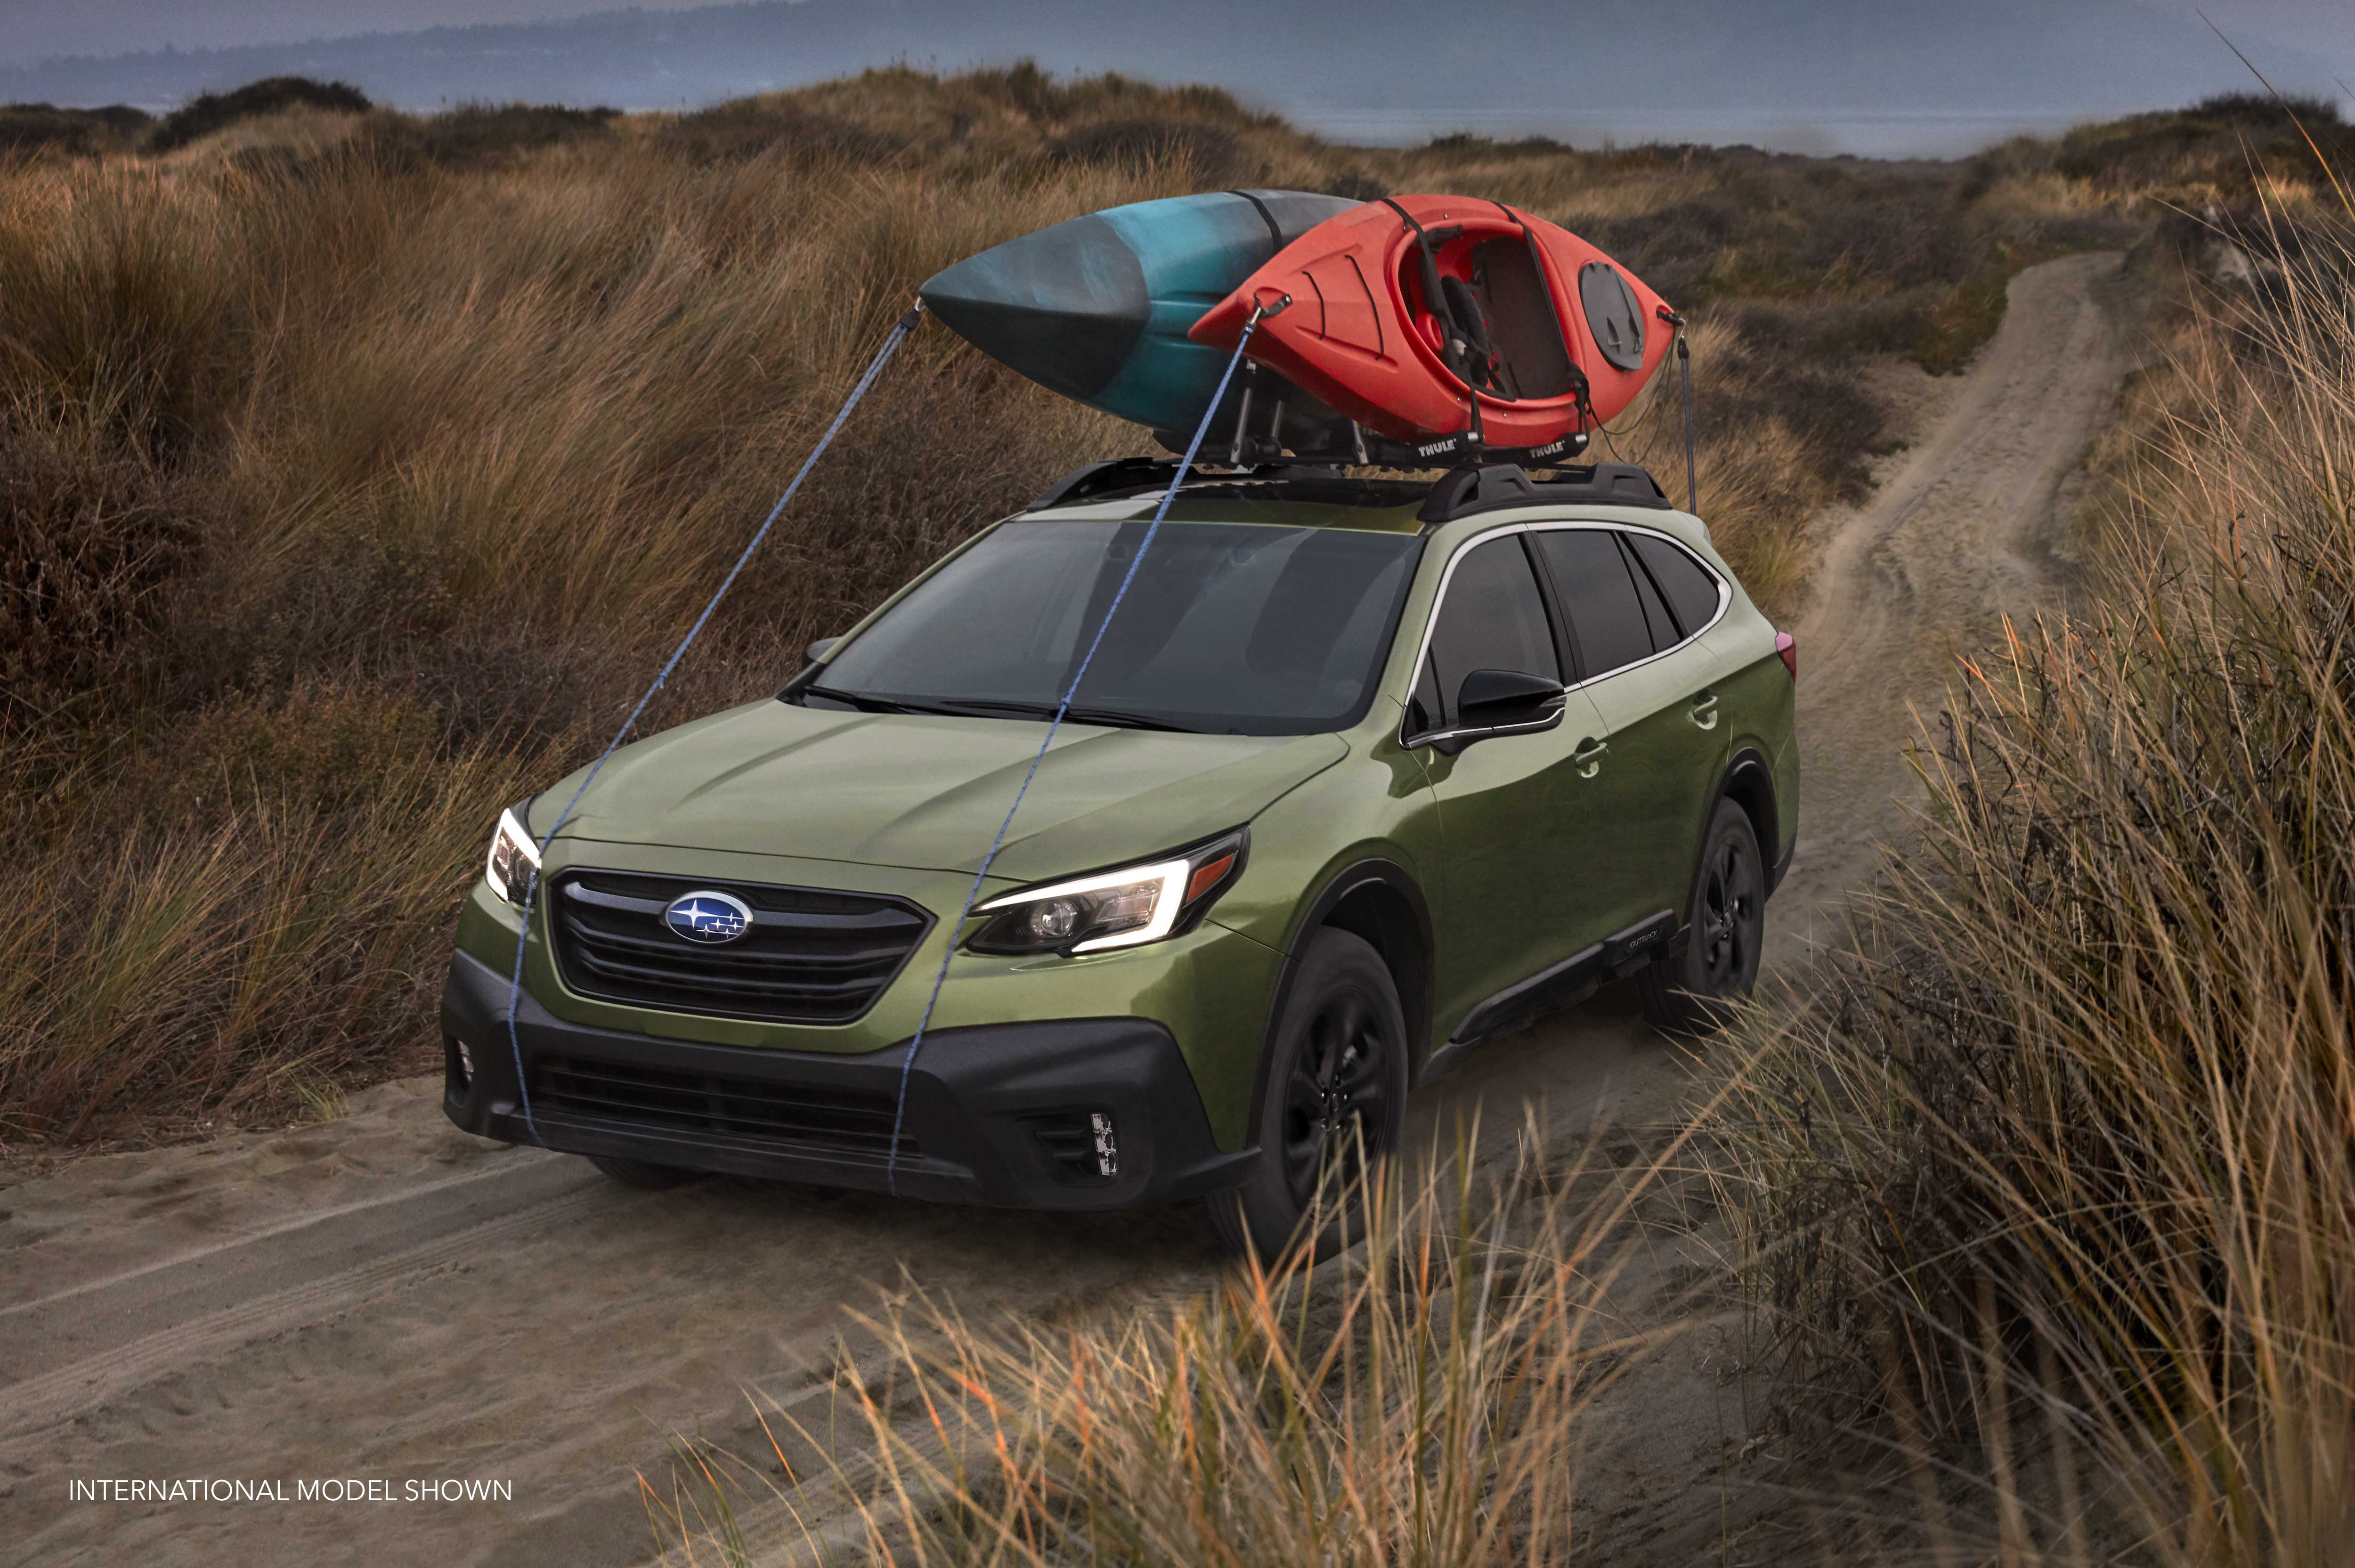 43 Great Subaru Outback 2020 Style with Subaru Outback 2020